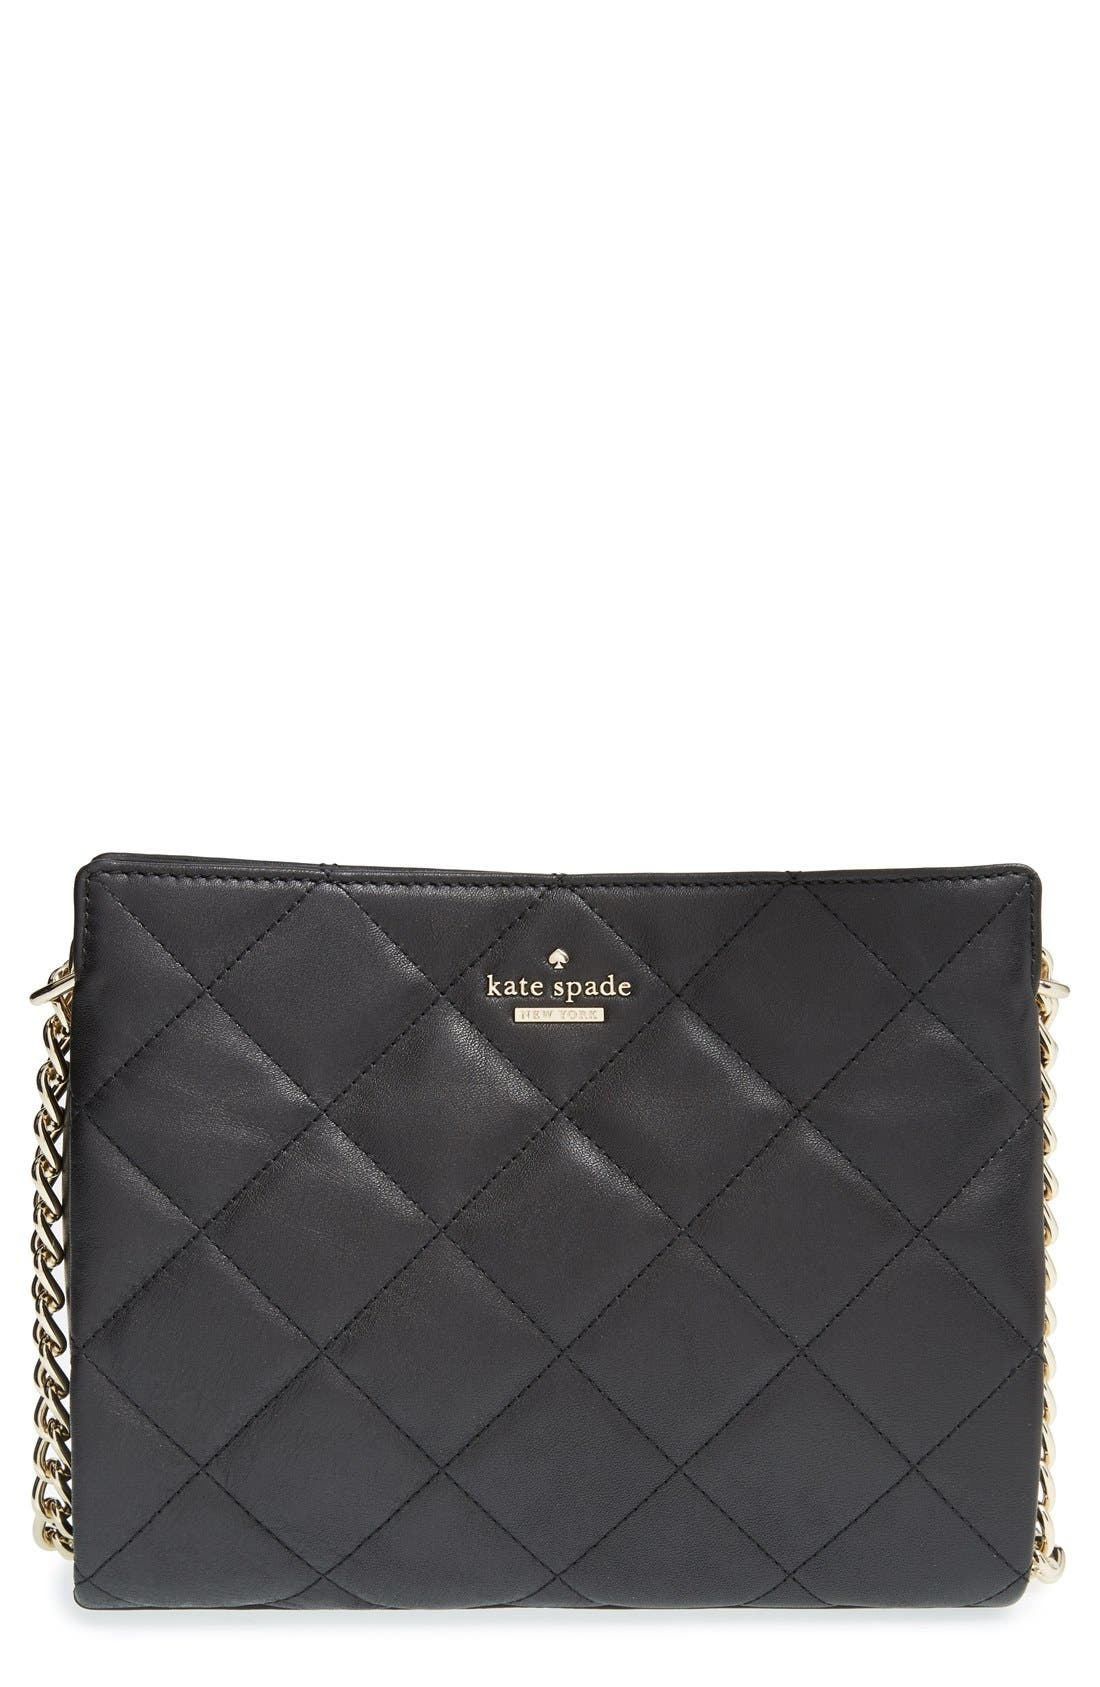 KATE SPADE NEW YORK 'emerson place - mini